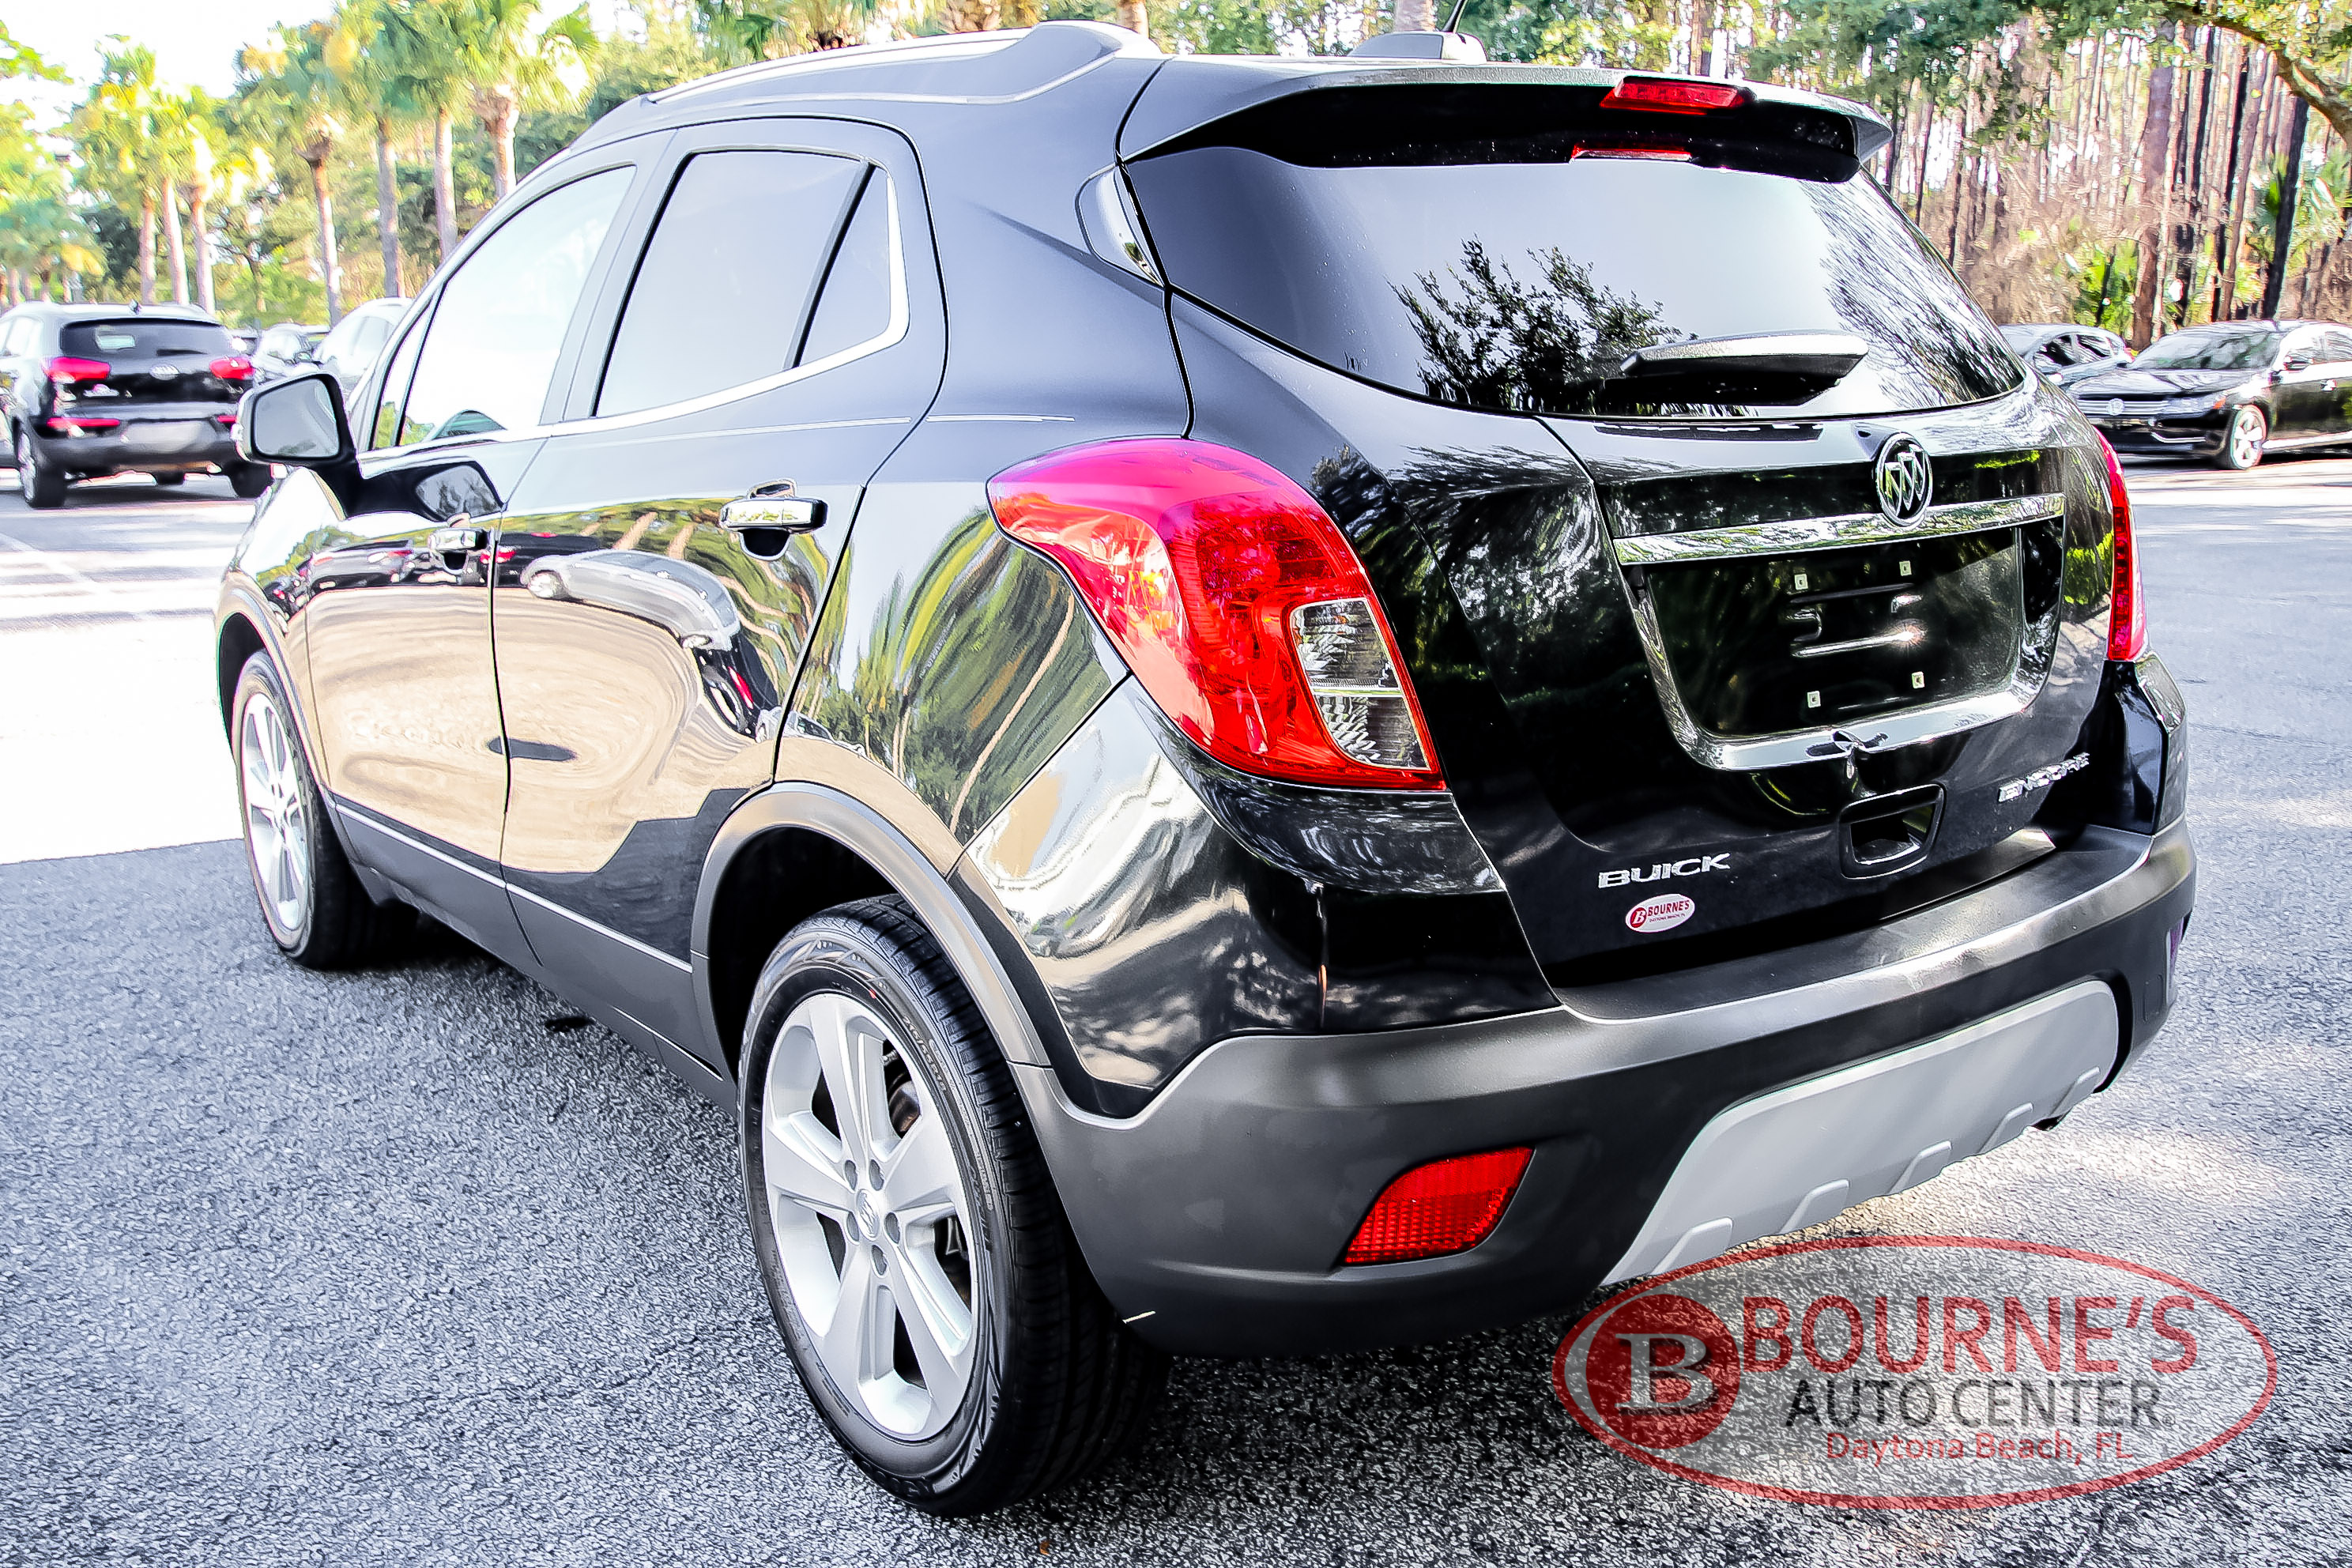 Used 2015 Buick Encore For Sale at Bourne's Auto Center